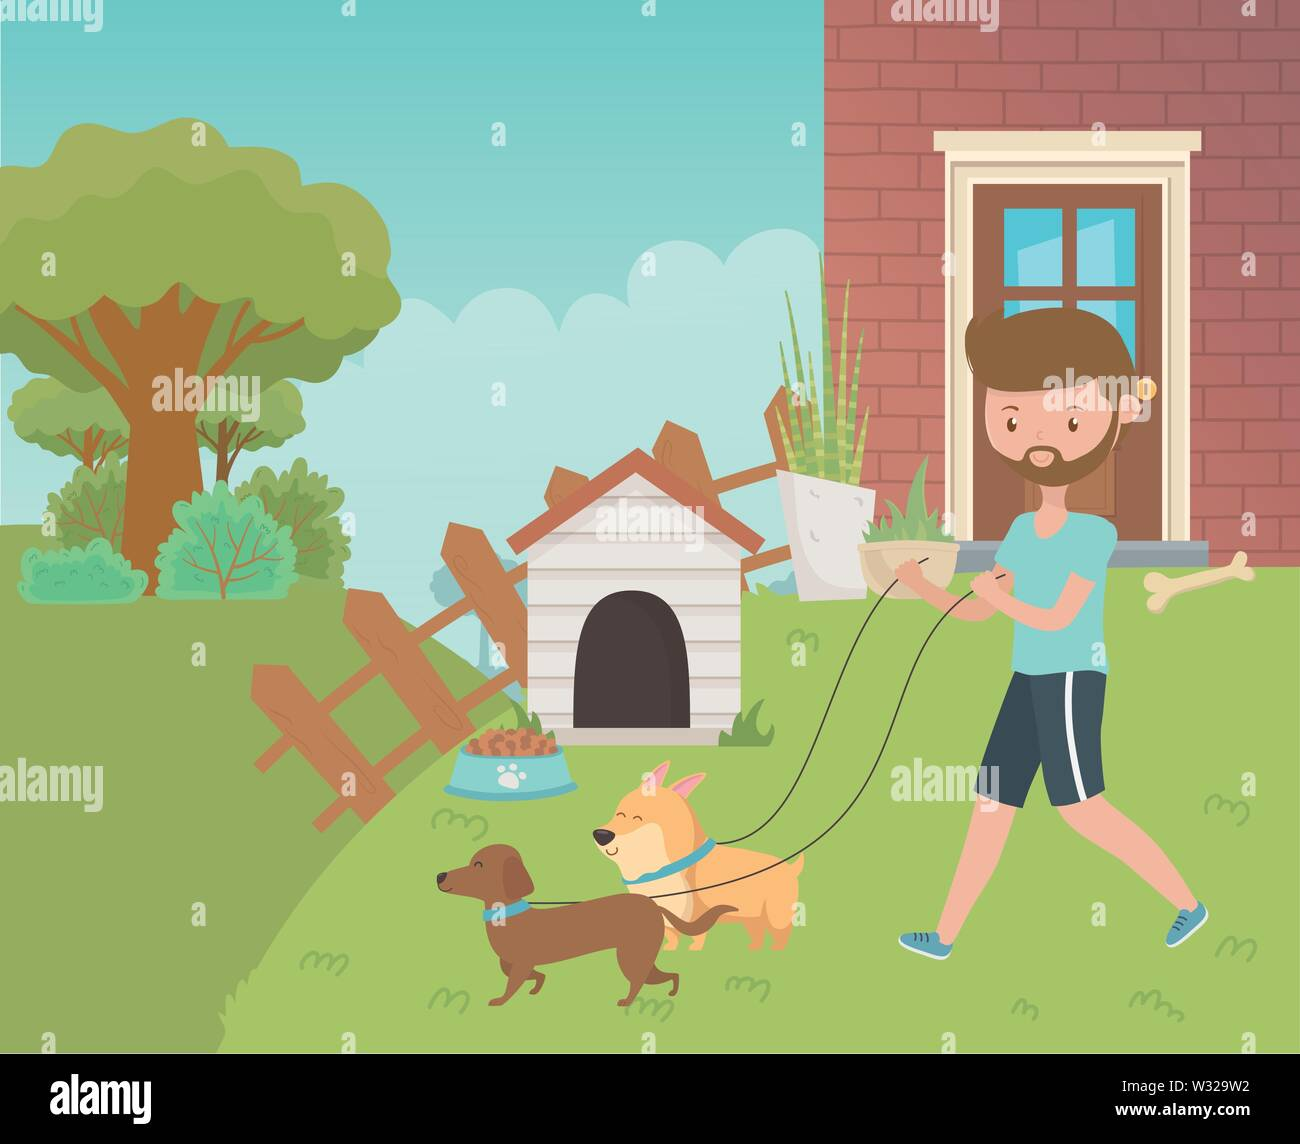 Boy with dogs cartoons design, Mascot pet animal nature cute and puppy theme Vector illustration - Stock Image